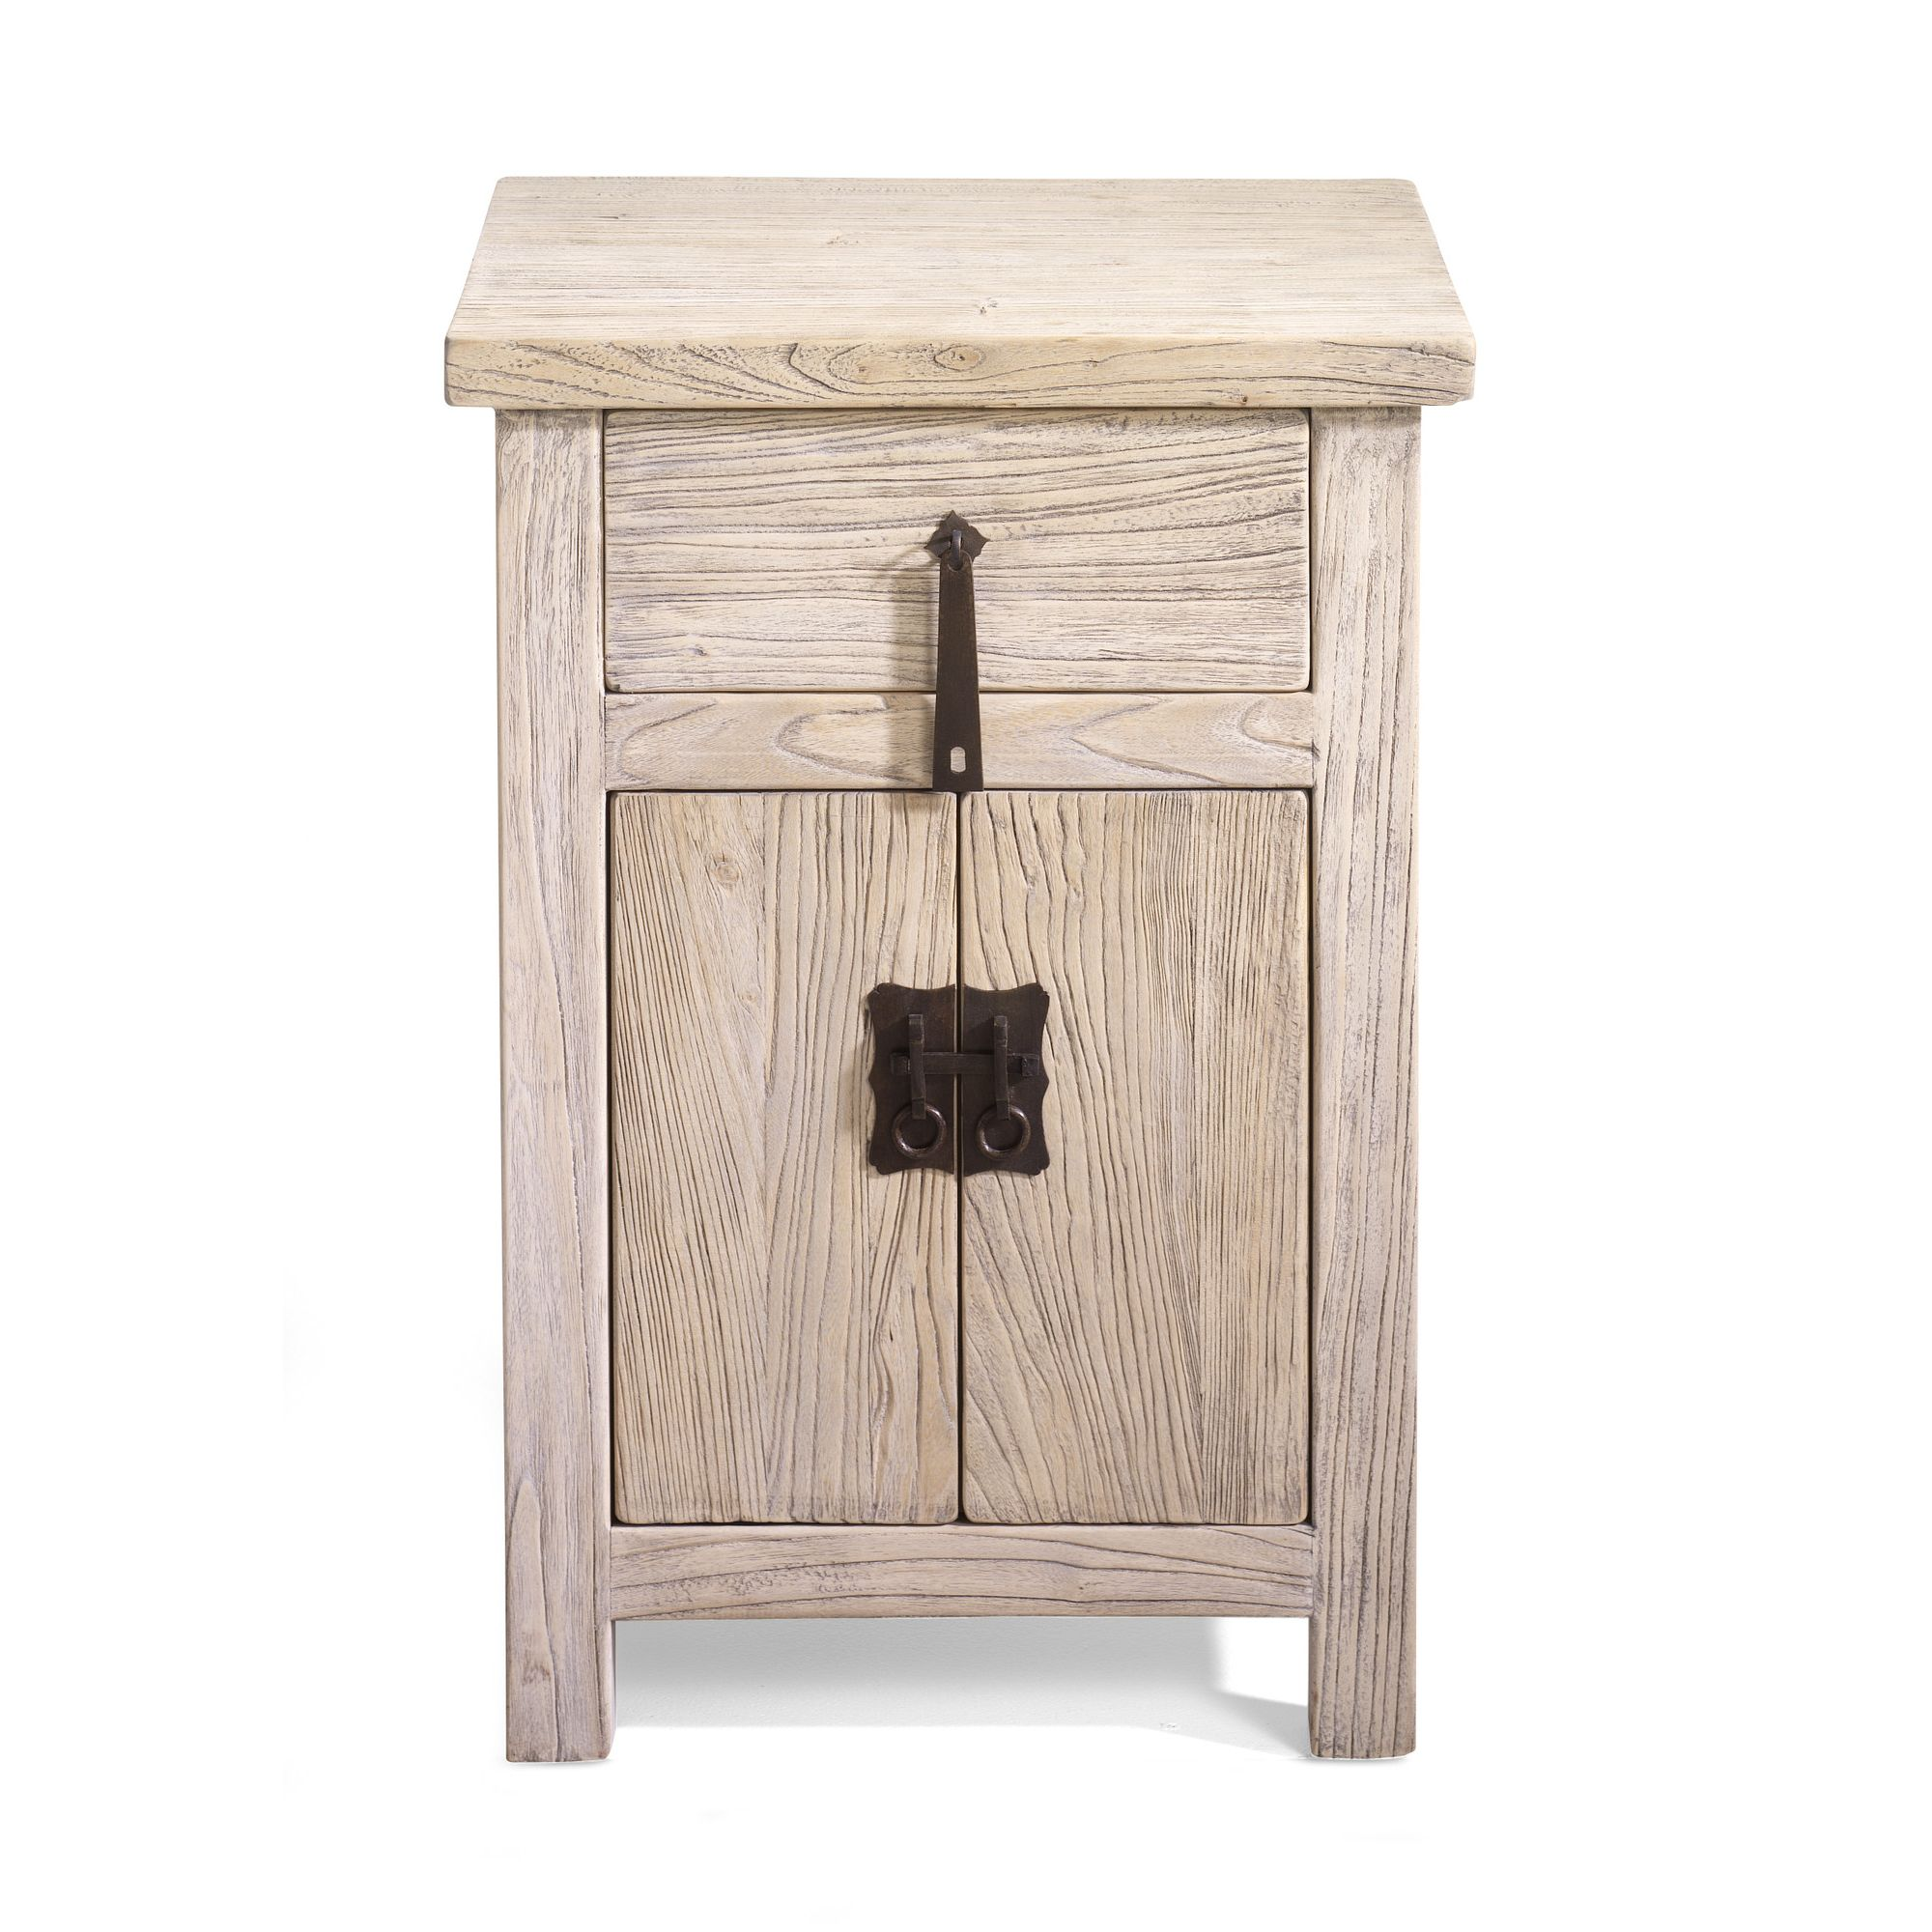 Shimu Chinese Country Furniture Bedside Cabinet at Tesco Direct